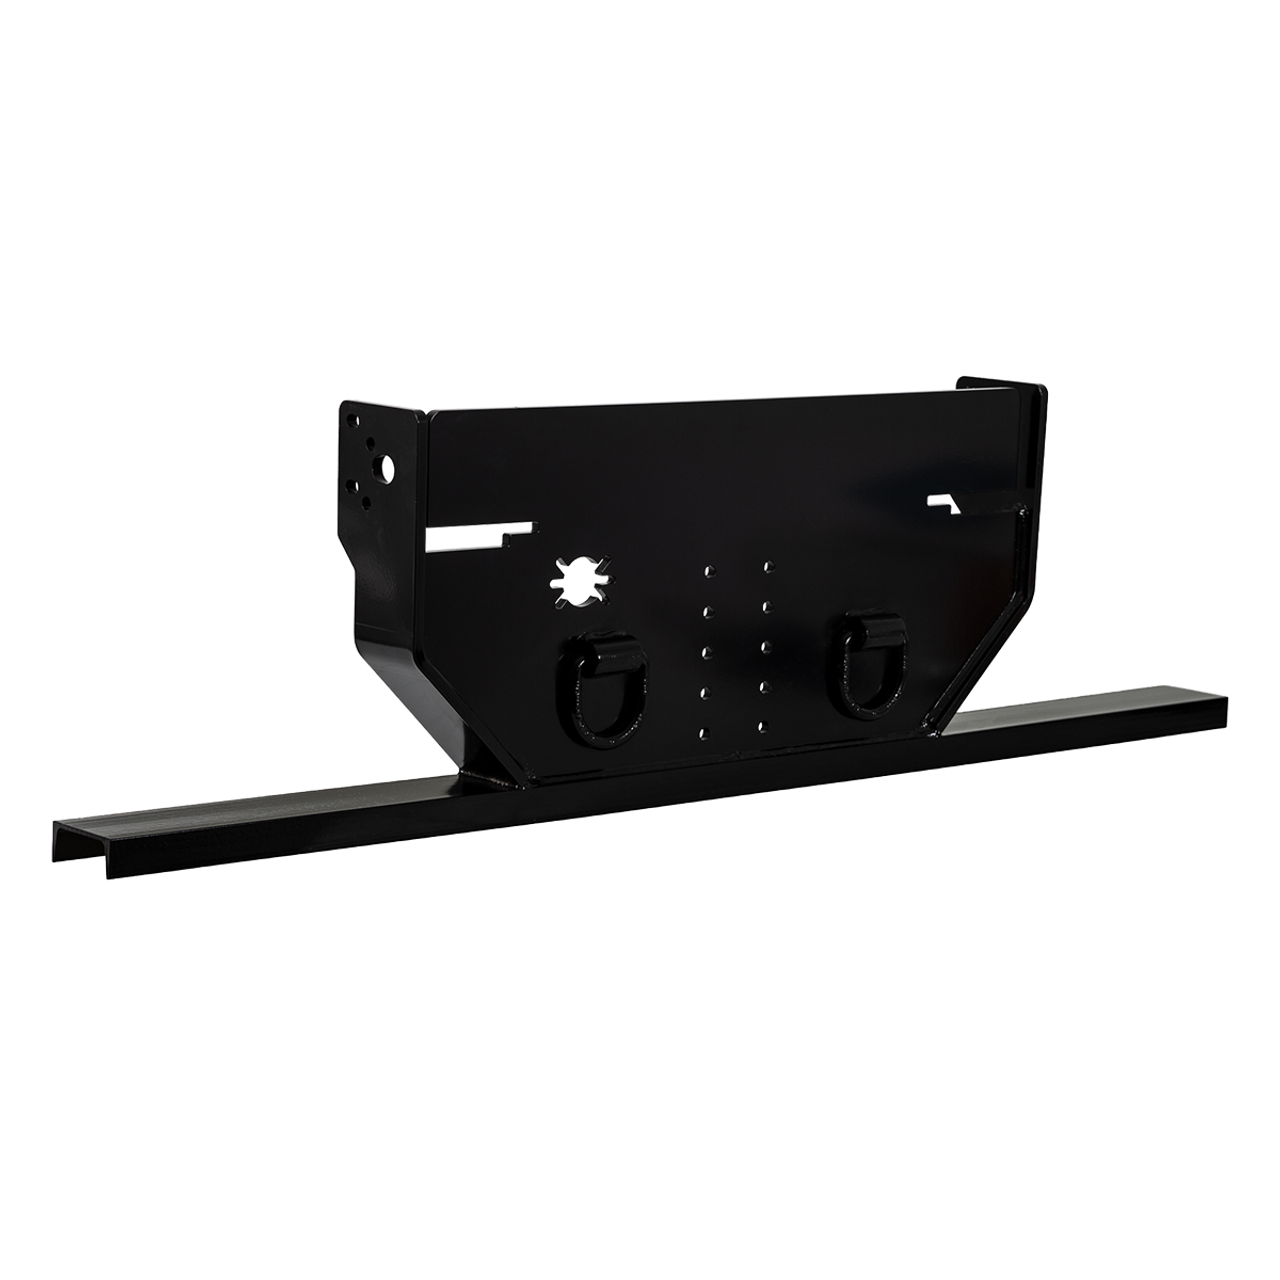 1809031A --- Hitch Plate with Pintle Hook Mount for Ford with Bottom Channel